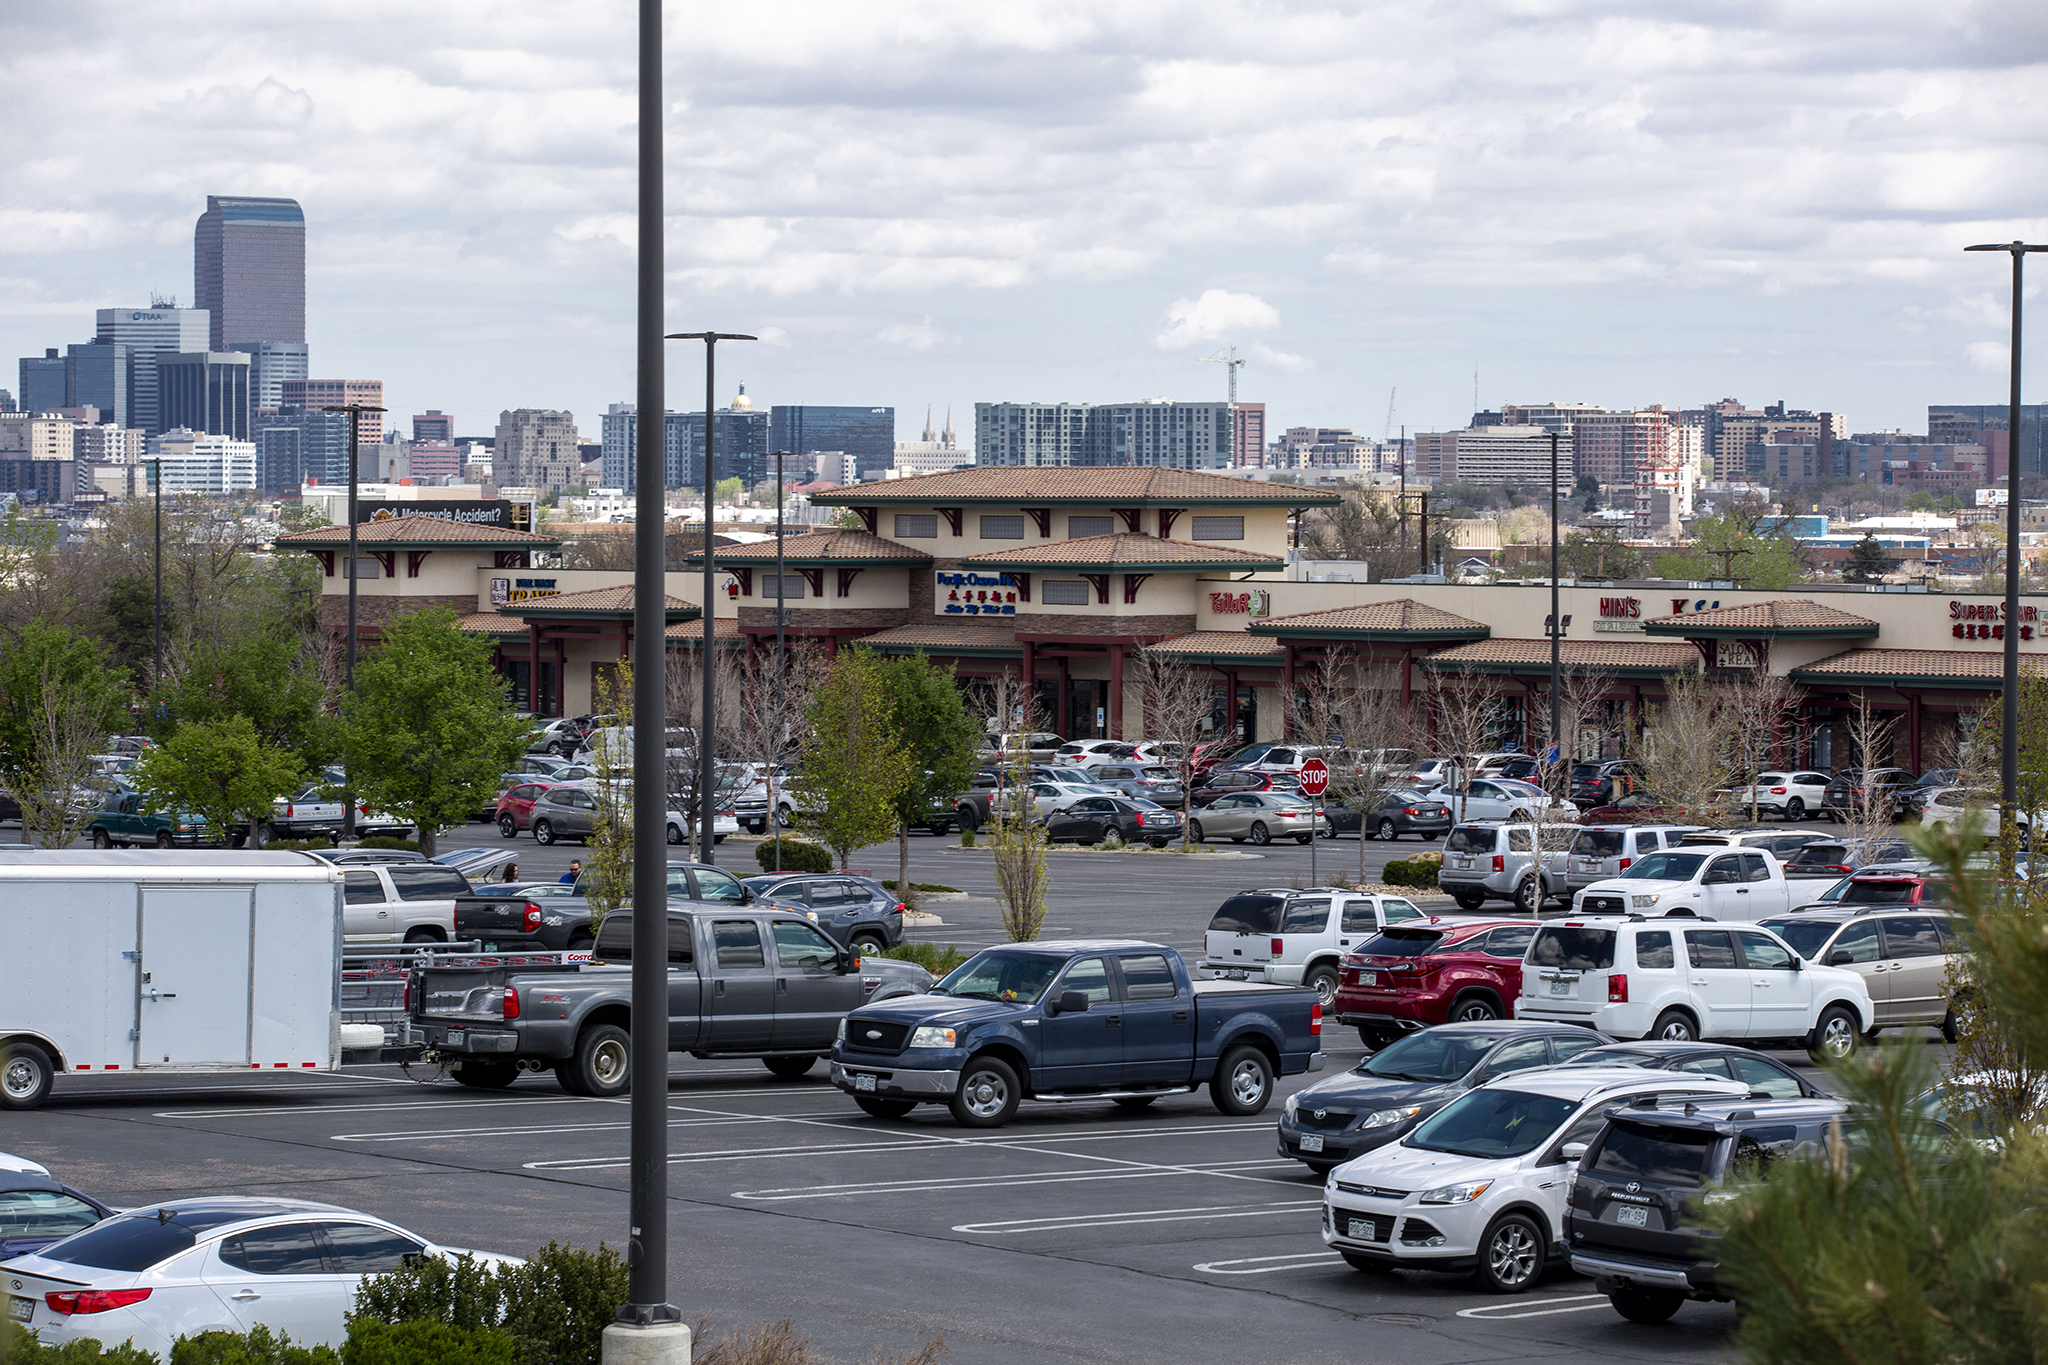 The parking lot surrounding Denver's Pacific Ocean Marketplace is full of cars. May 9, 2020.